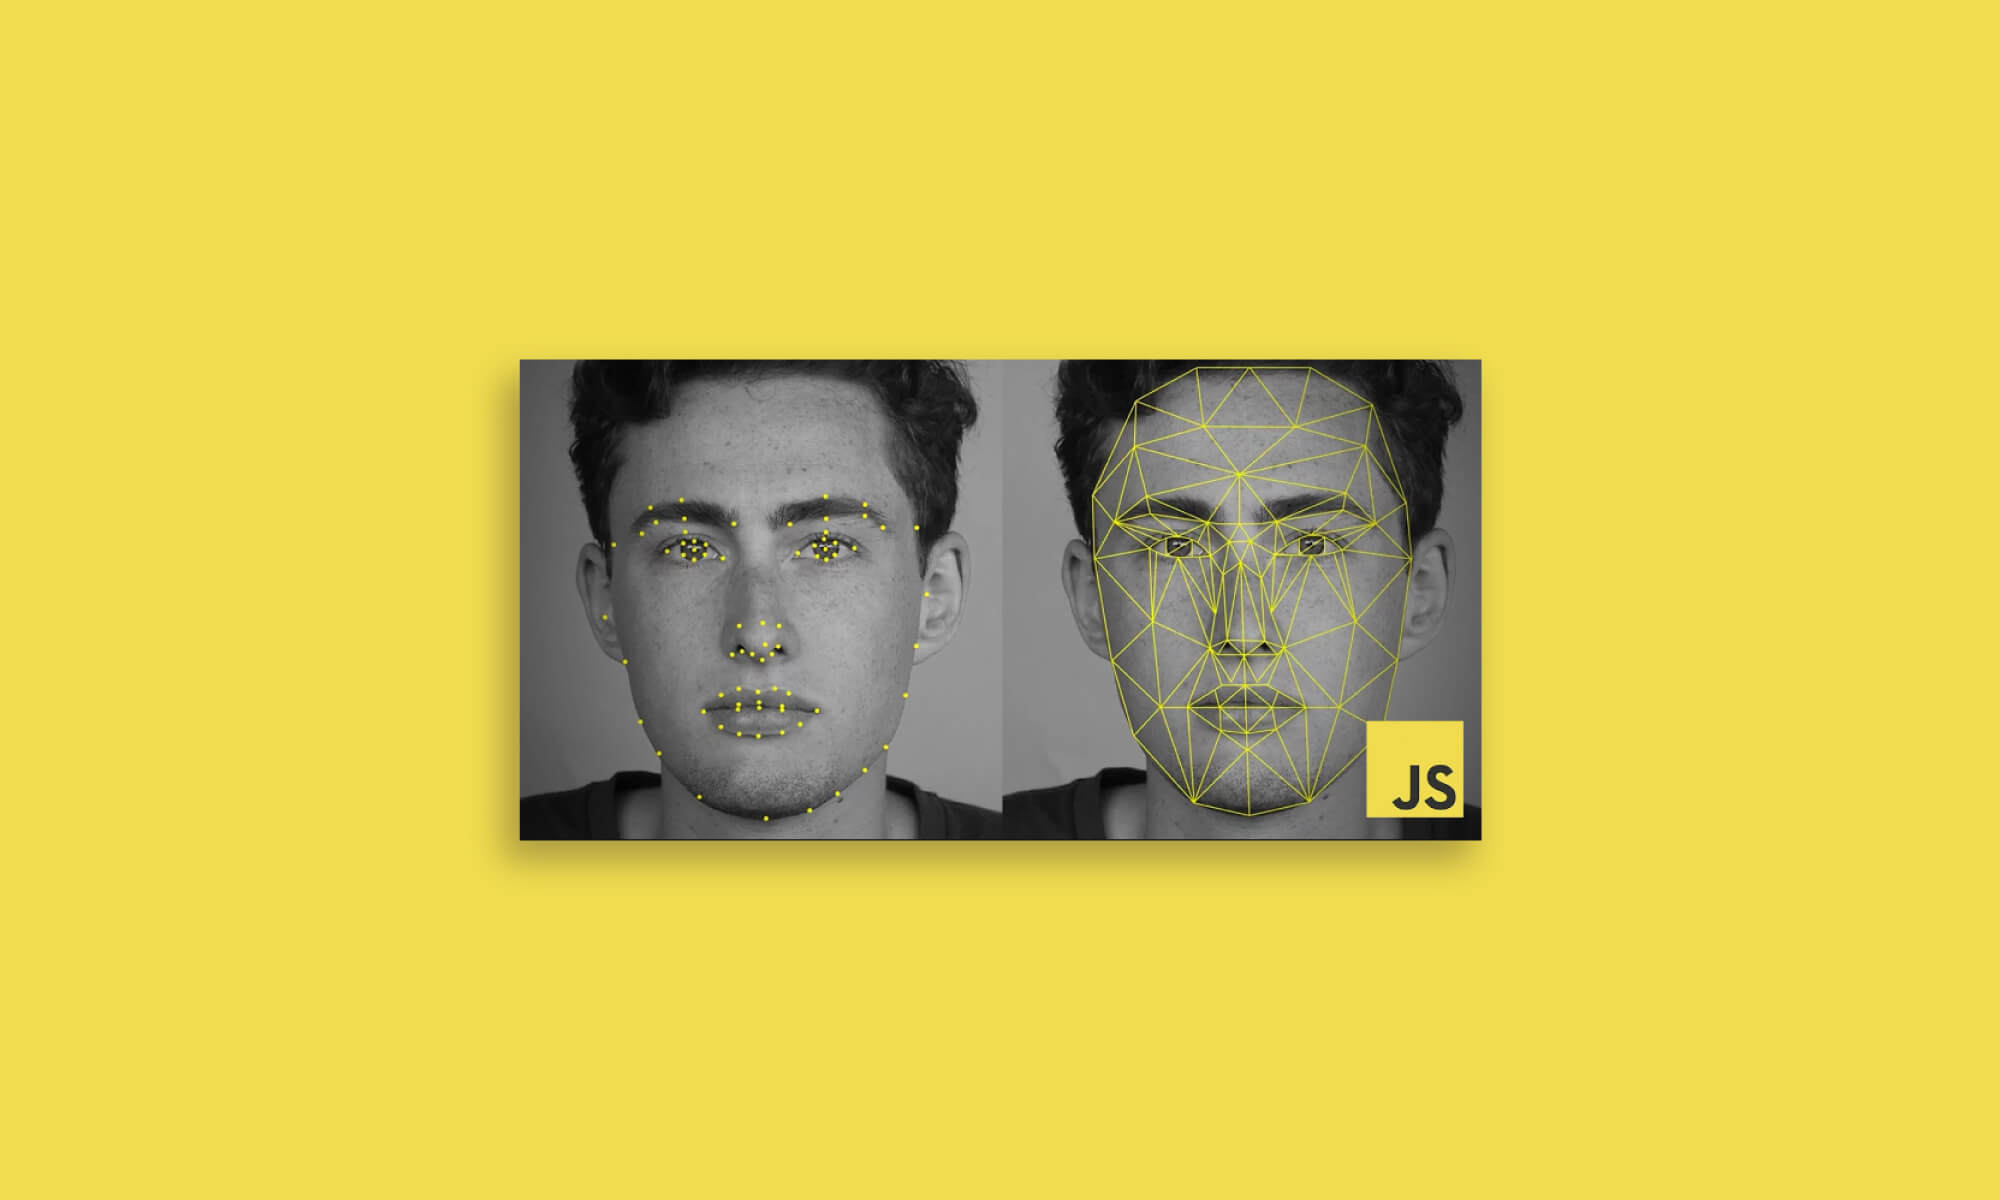 Face-Detection Javascript